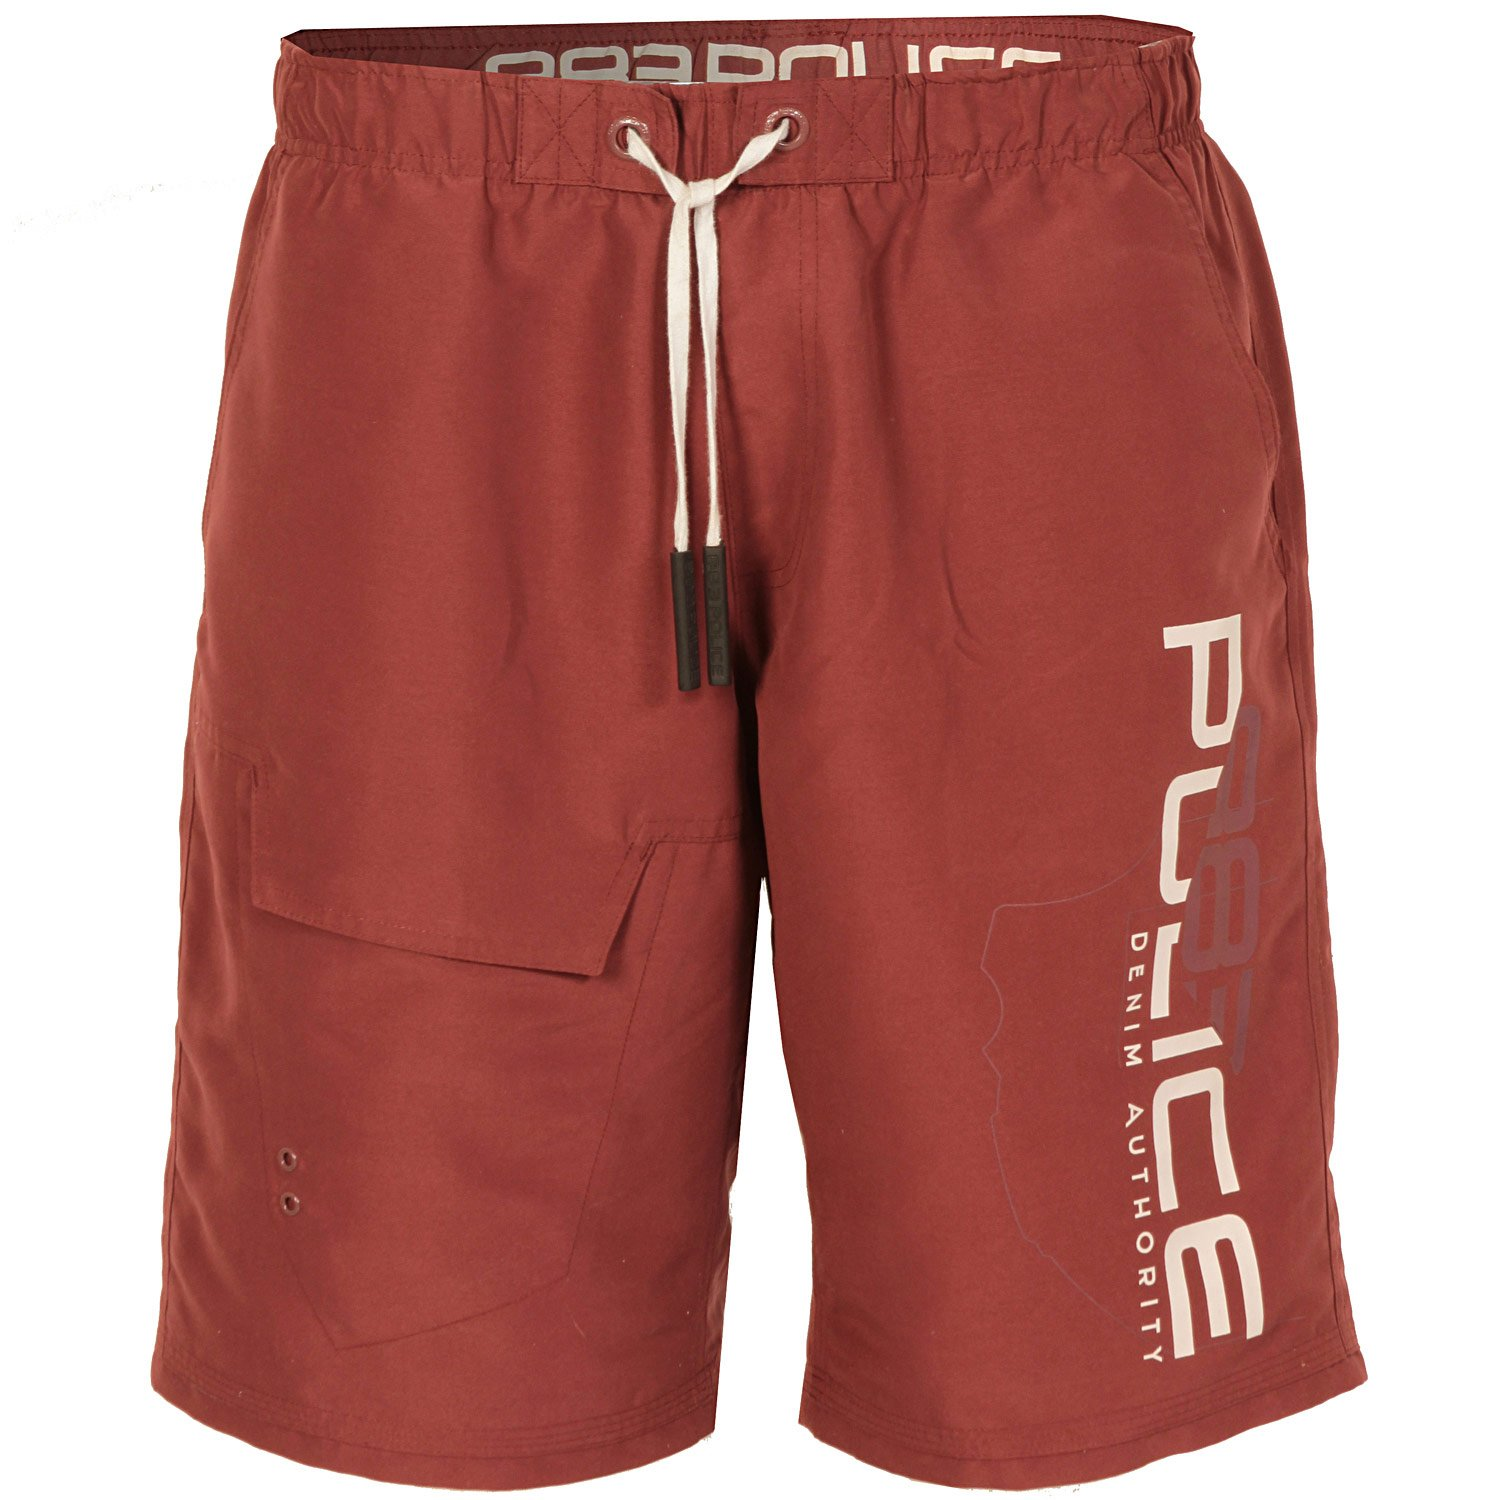 883 Police Men's Stefford Zabou Board (Swim) Shorts